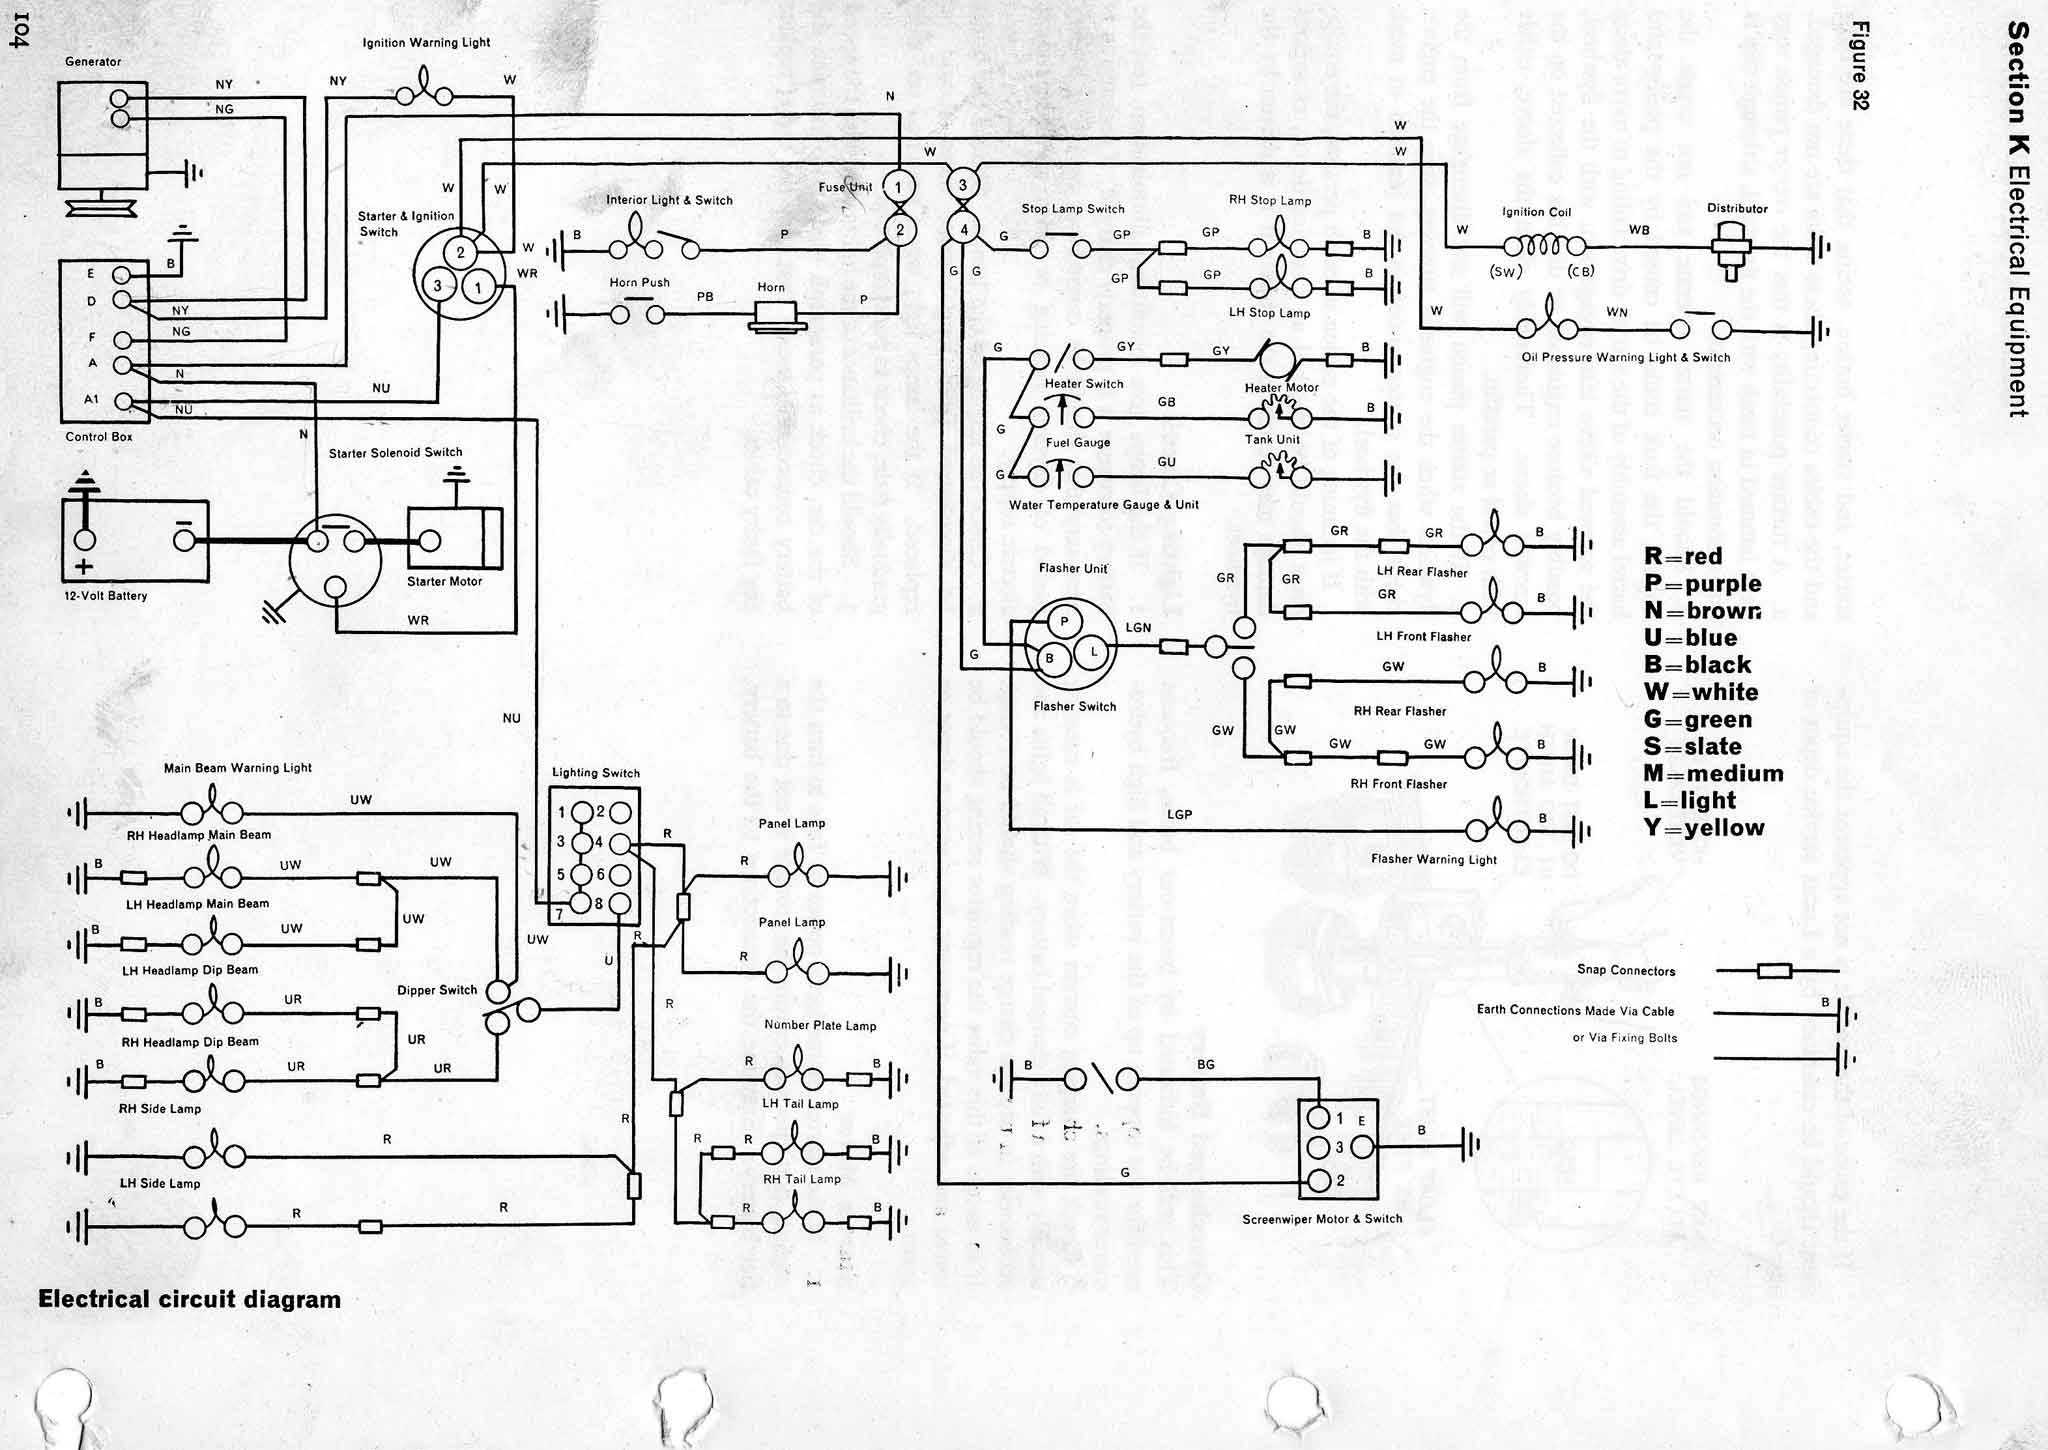 reliant spares wiring diagrams rh reliantspares com show wiring diagram 1958 cj5 show wiring diagram of bauer b236b oven